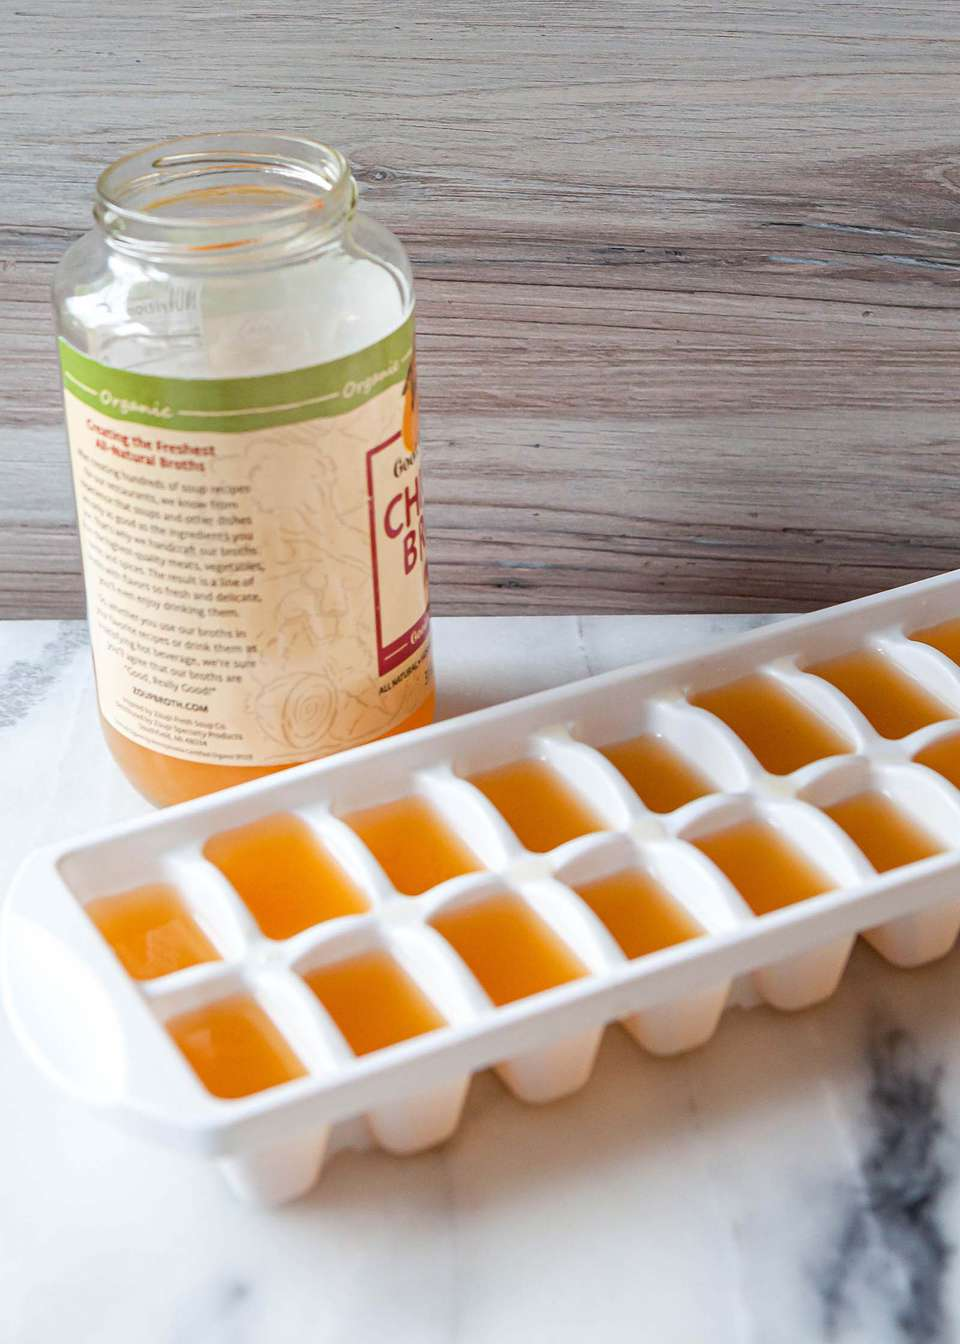 Chicken broth in ice cube tray